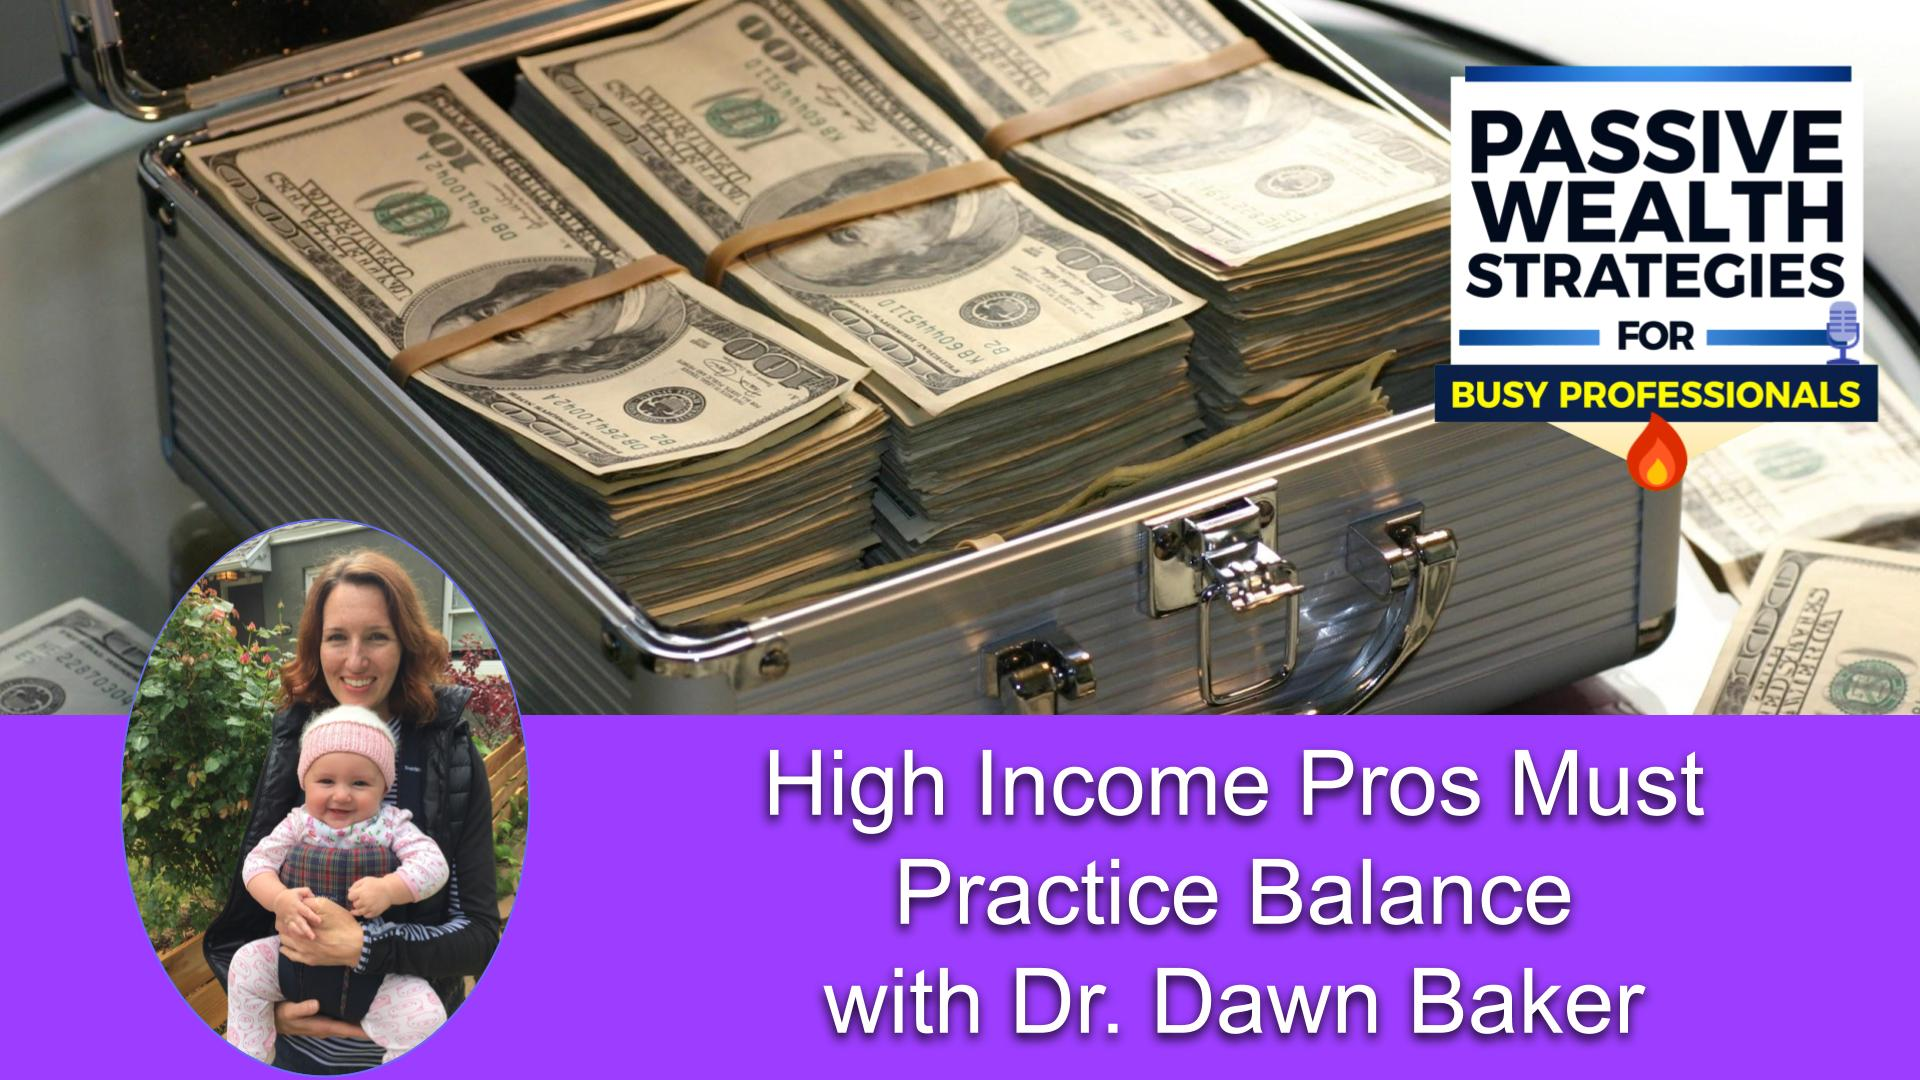 179 High Income Pros Must Practice Balance with Dr. Dawn Baker